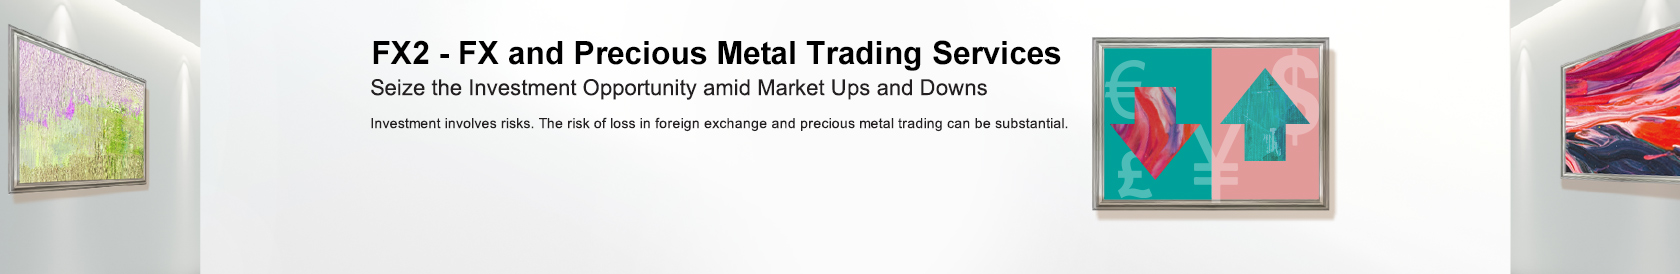 FX2 - FX and Precious Metal Trading Services